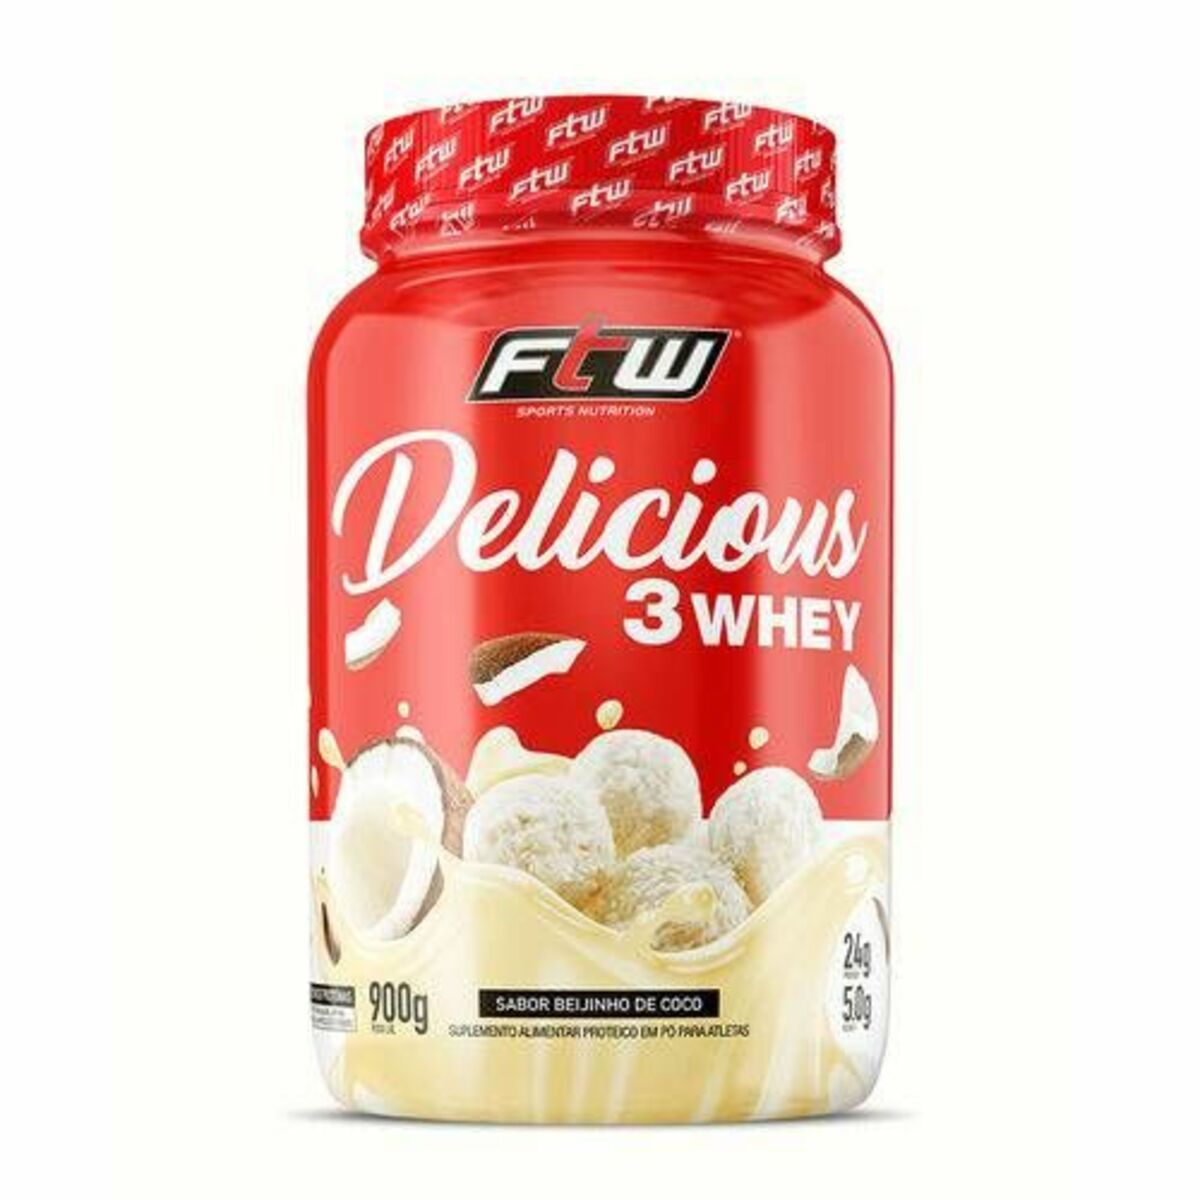 DELICIOUS 3 WHEY 900G BEIJNHO COCO FTW SPORTS NUTRITION